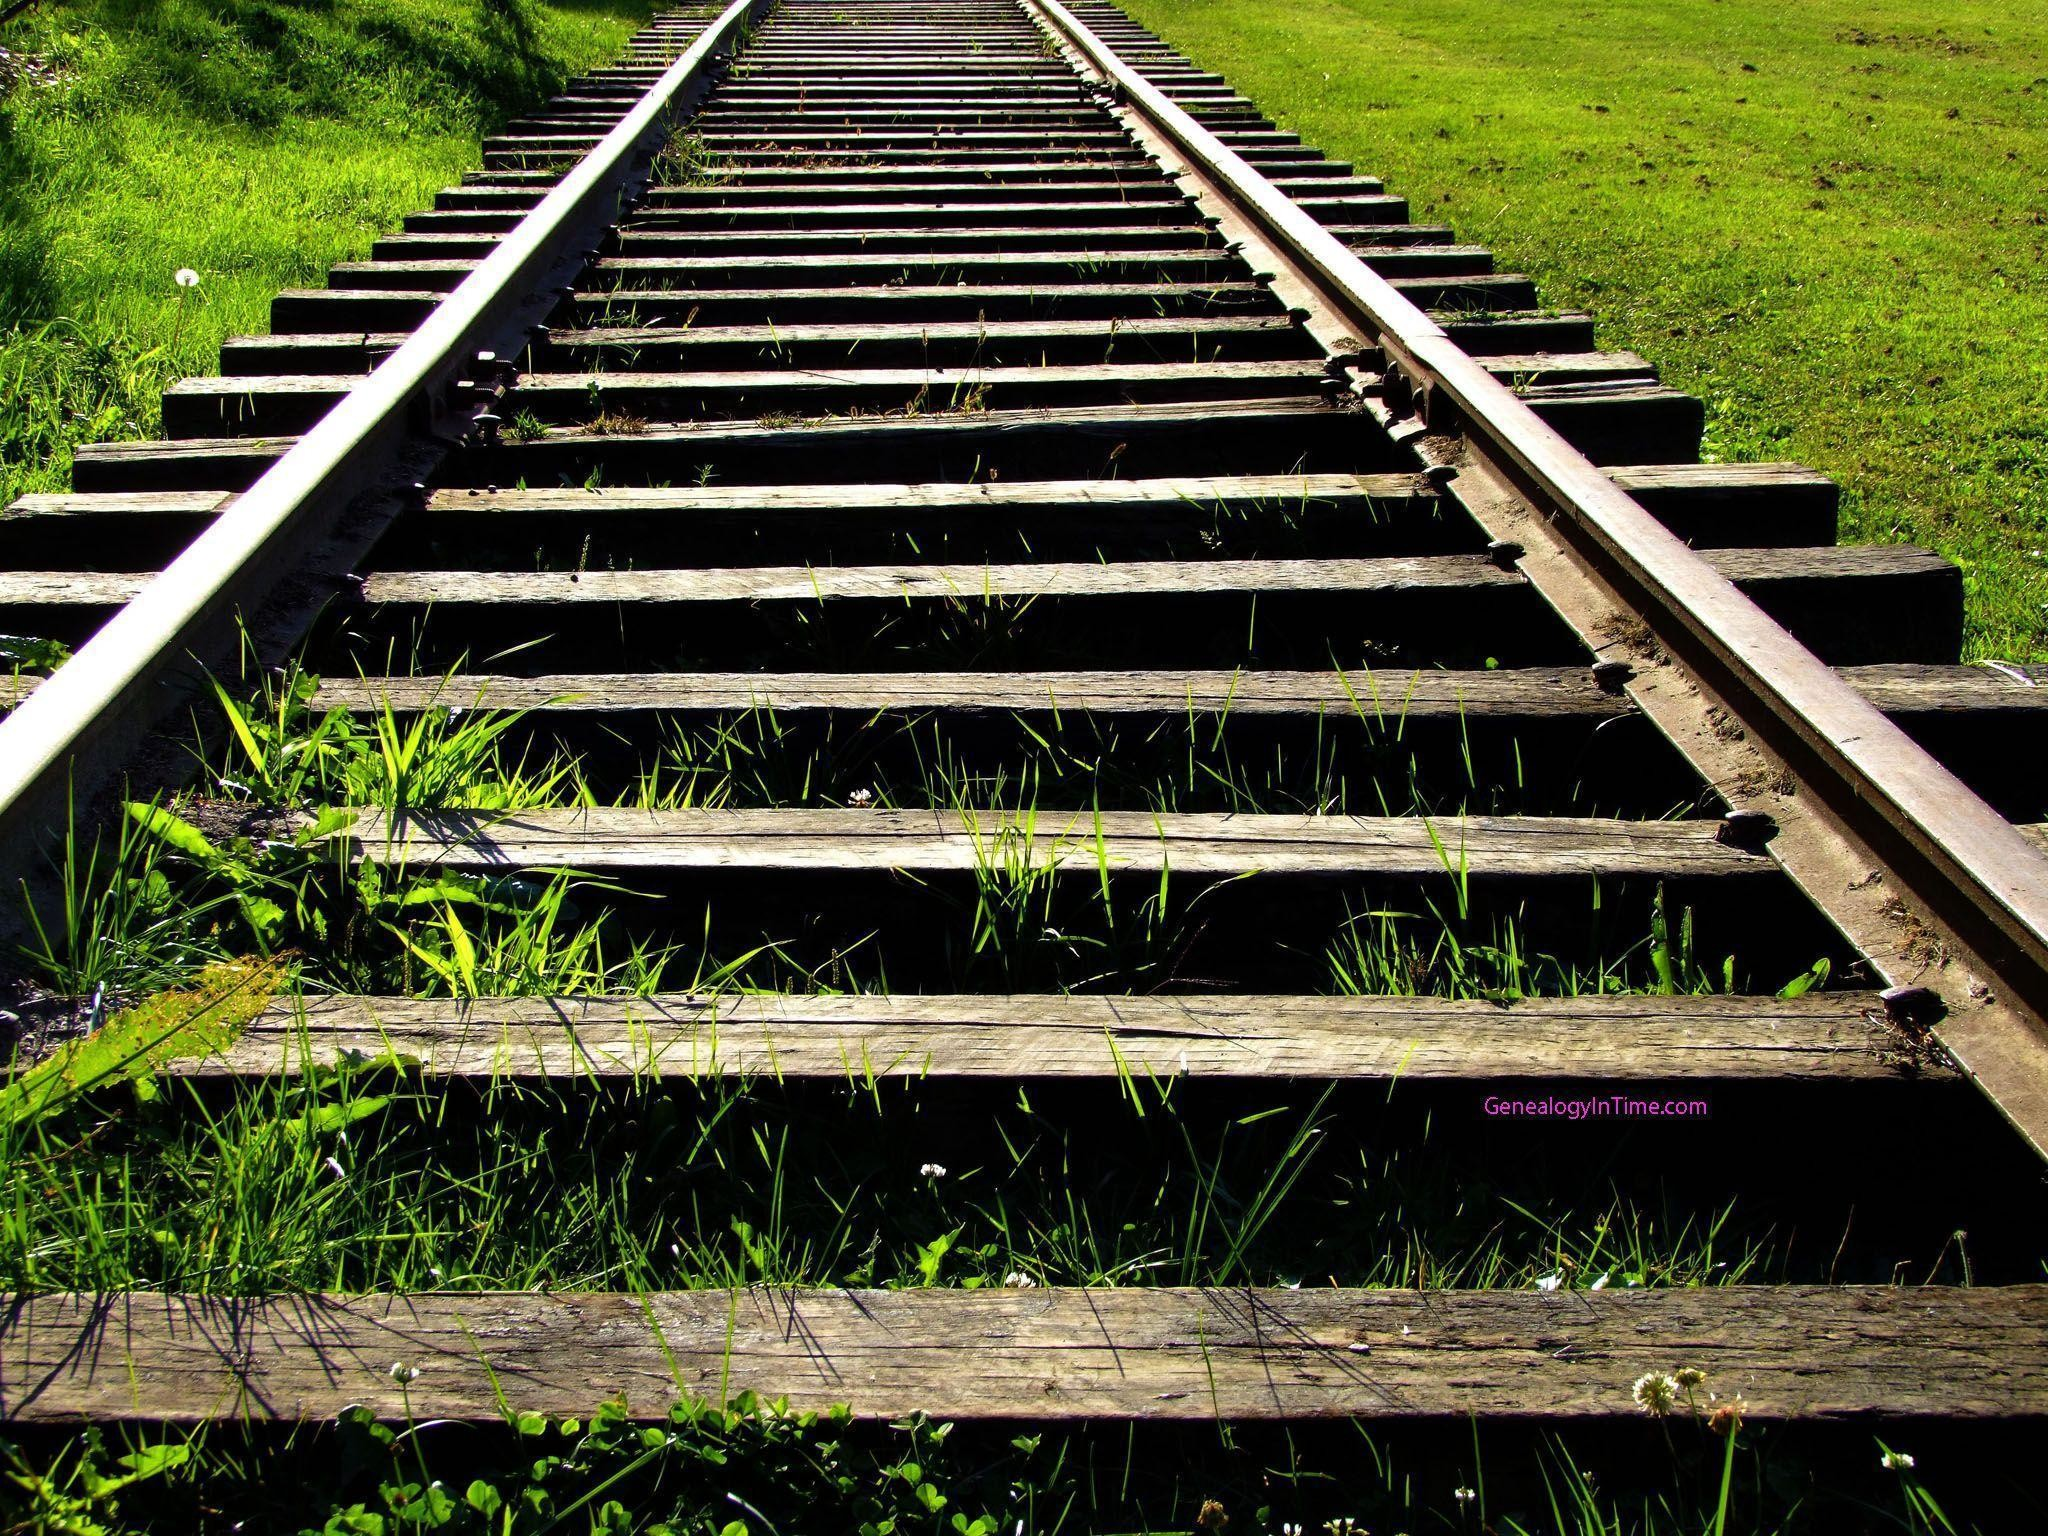 Train Track Wallpapers 10657 – Amazing Wallpaperz